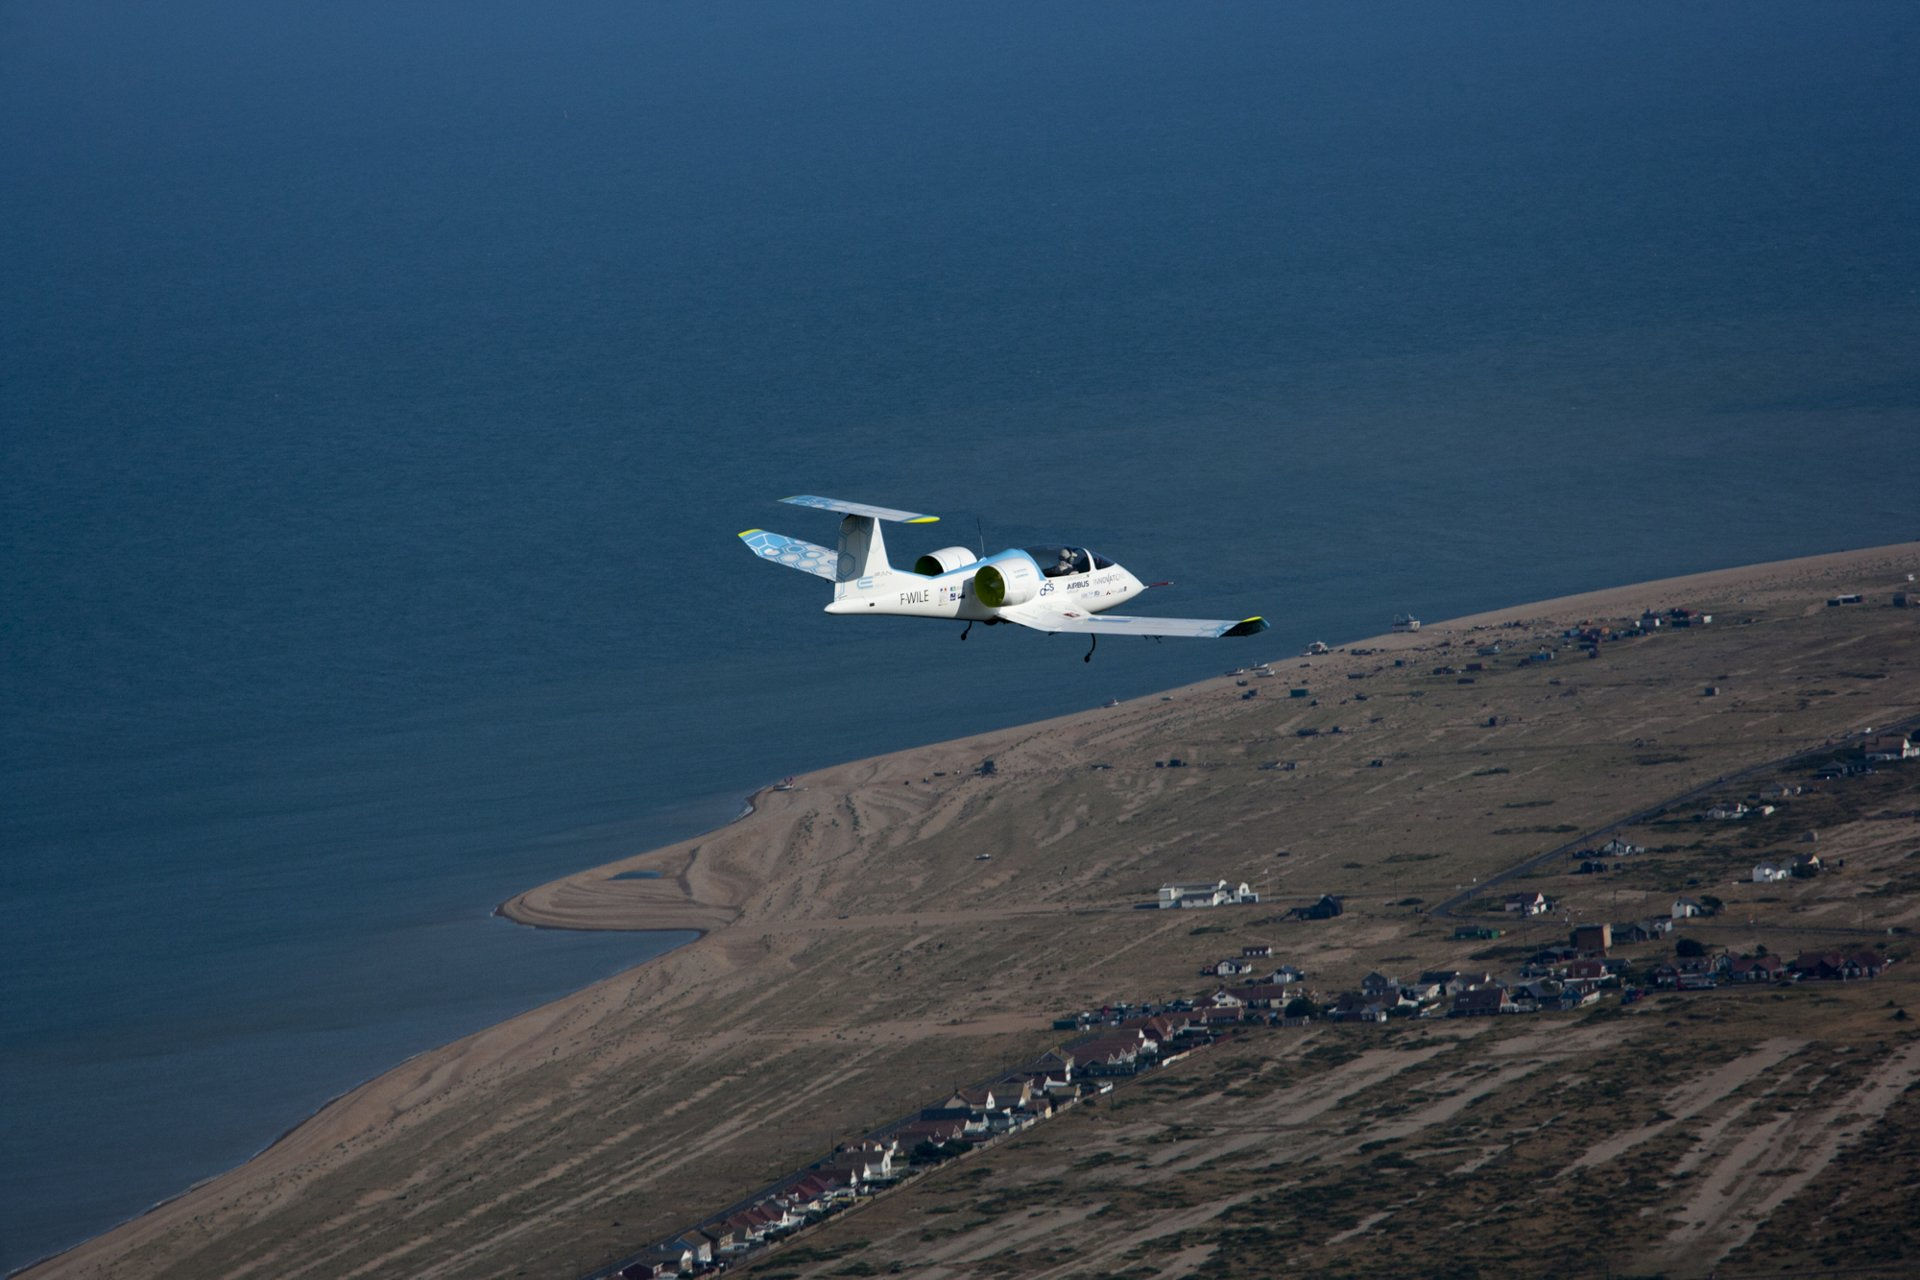 The E-Fan crossed the English Channel